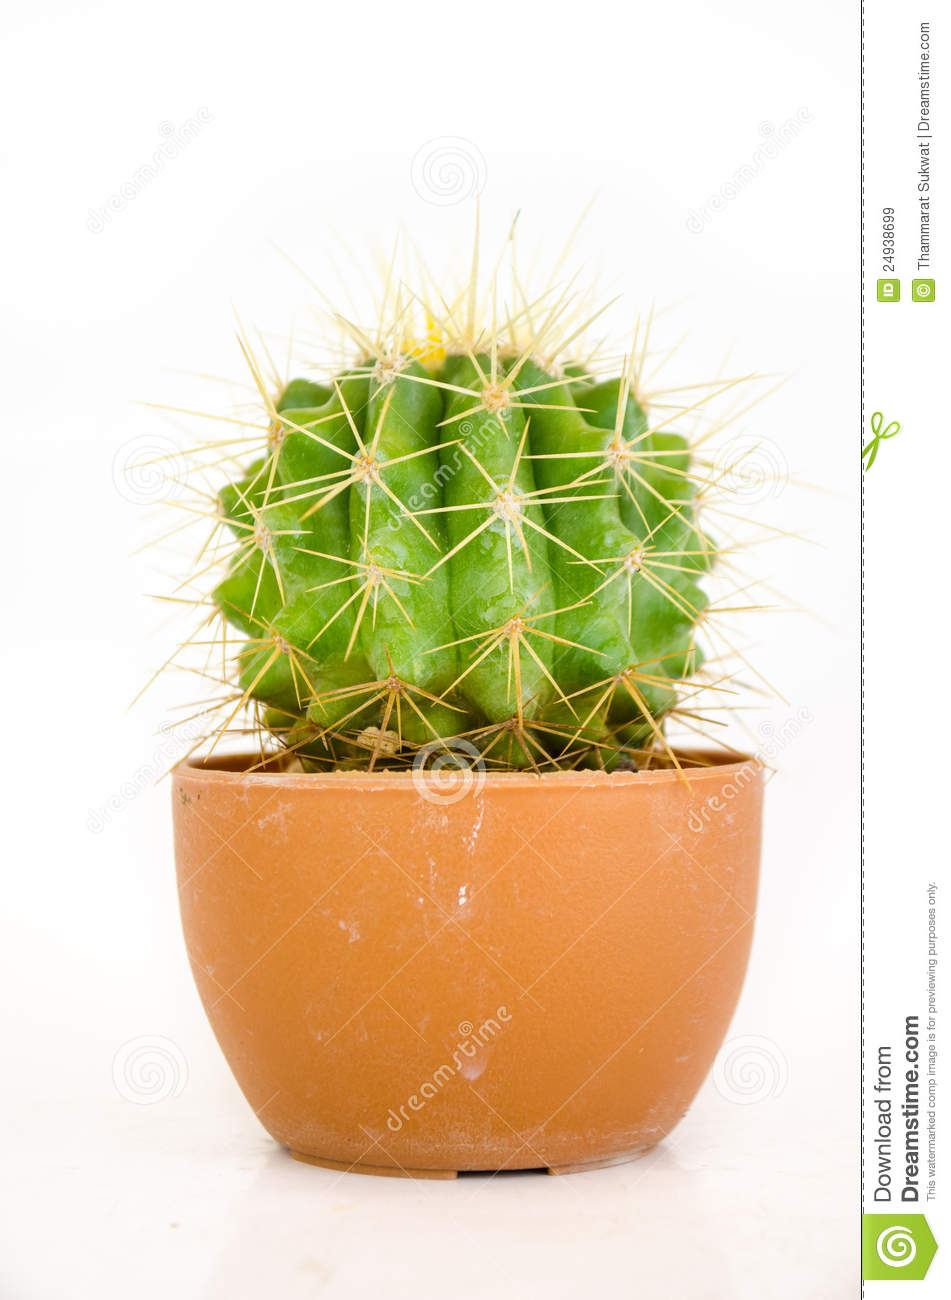 Small Cactus In Pot Royalty Free Stock Images - Image: 24938699